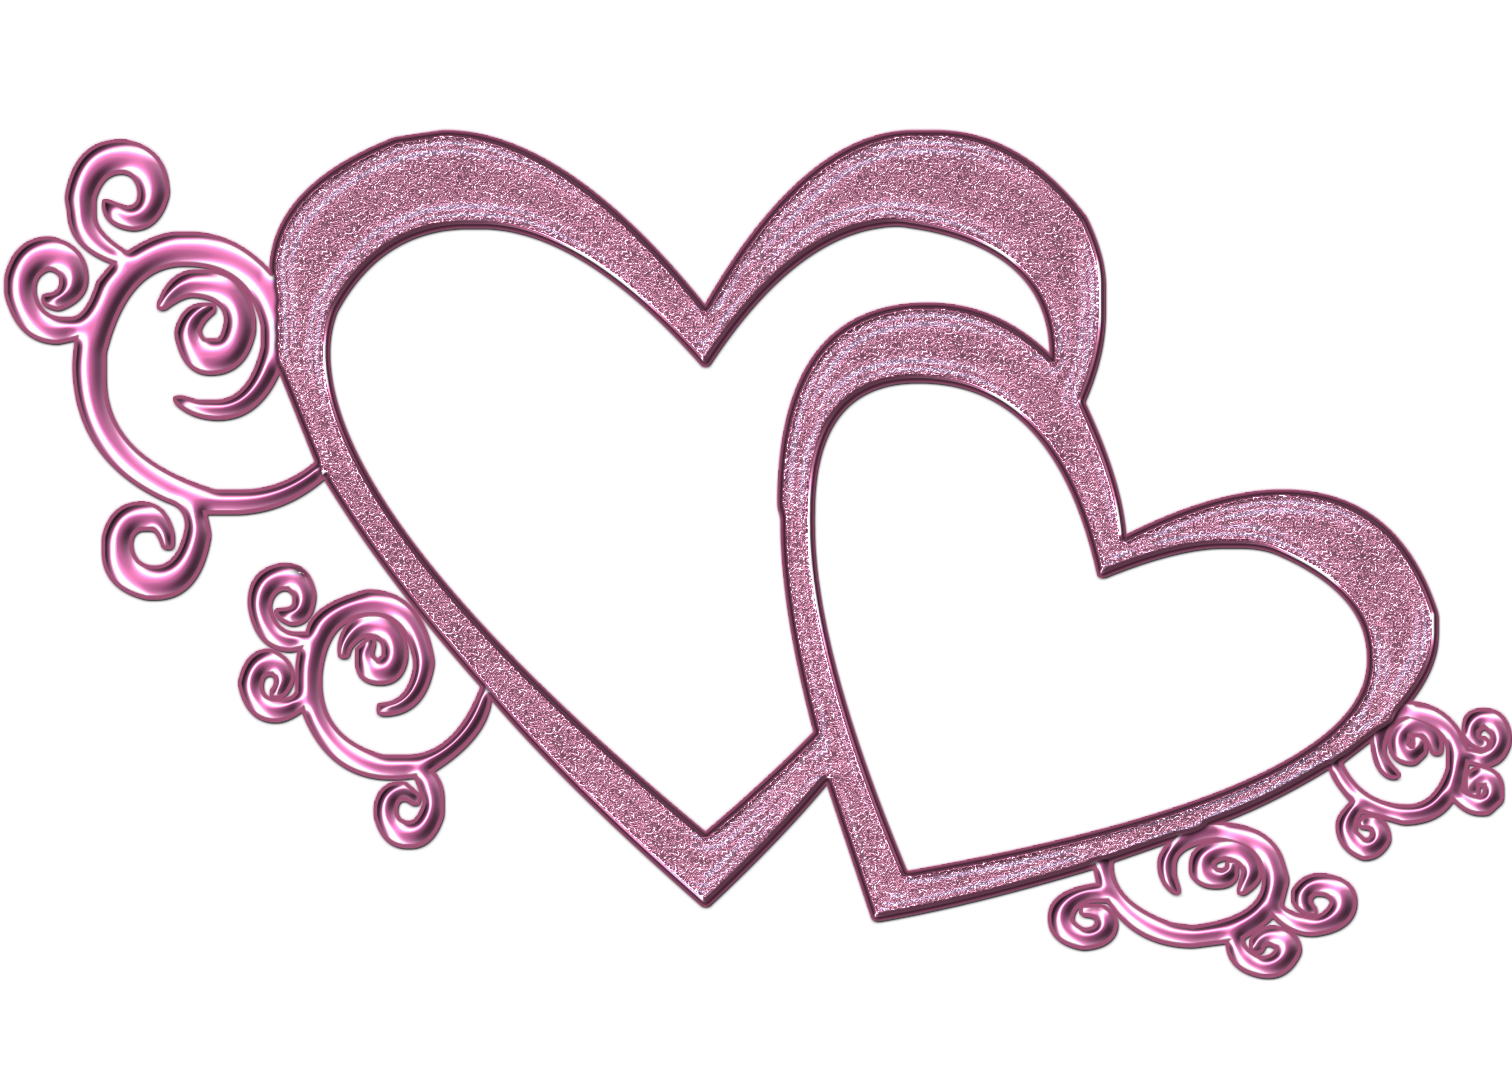 Wedding two heart clipart vector royalty free stock Wedding Two Heart Clipart - clipartsgram.com vector royalty free stock